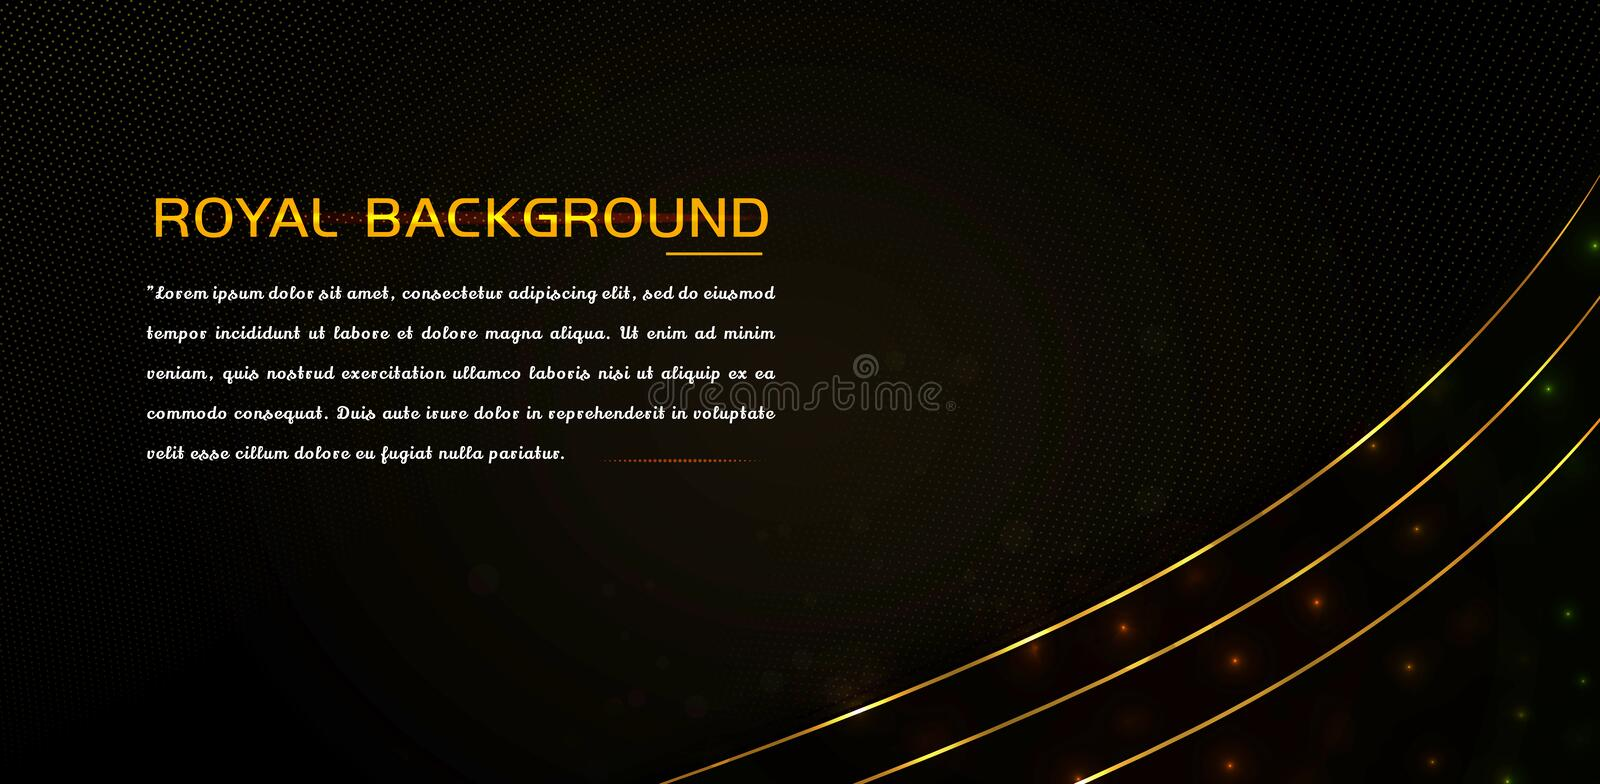 Luxury element with shiny gold effect and glowing lines stock illustration